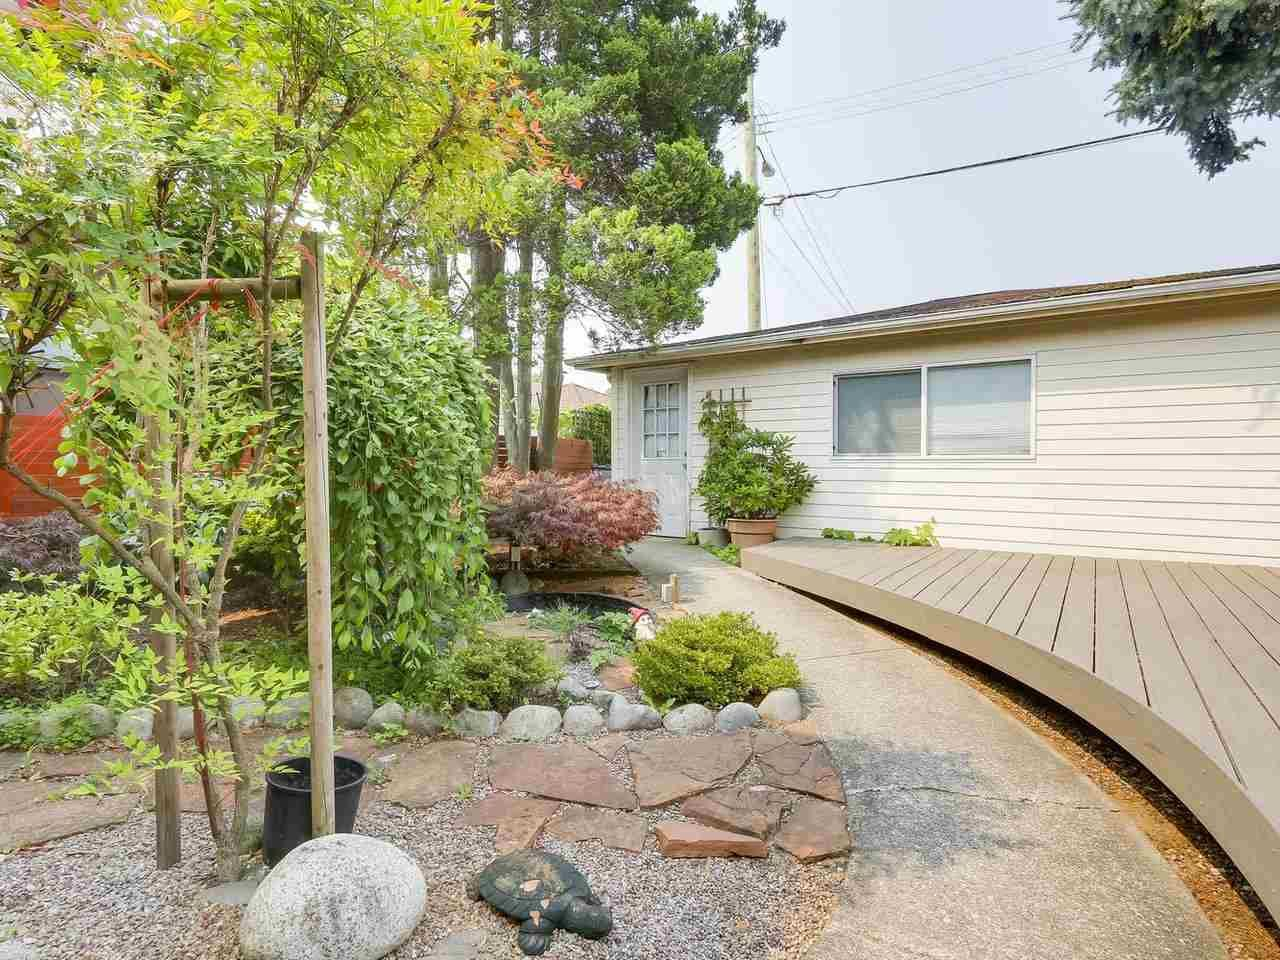 Photo 14: Photos: 165 E 55TH AVENUE in Vancouver: South Vancouver House for sale (Vancouver East)  : MLS®# R2297472